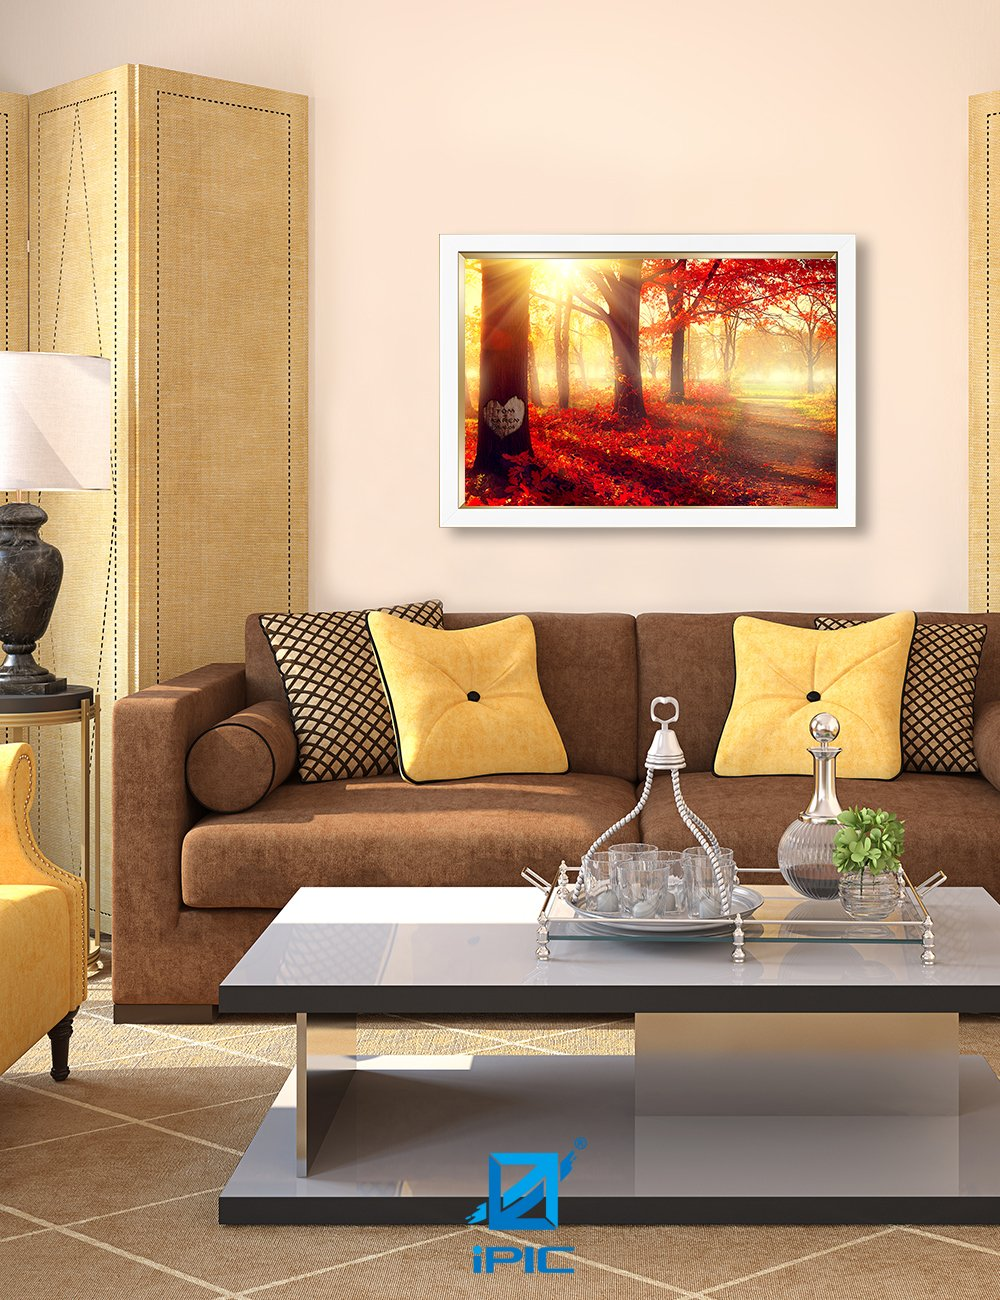 IPIC - ''You Are My Sunshine'', Personalized Artwork with Names and Date on, Perfect love gift for Anniversary,Wedding,Birthday and Holidays. Picture size: 30x20'', Framed Size: 33x23x1.25'' by IPIC (Image #5)